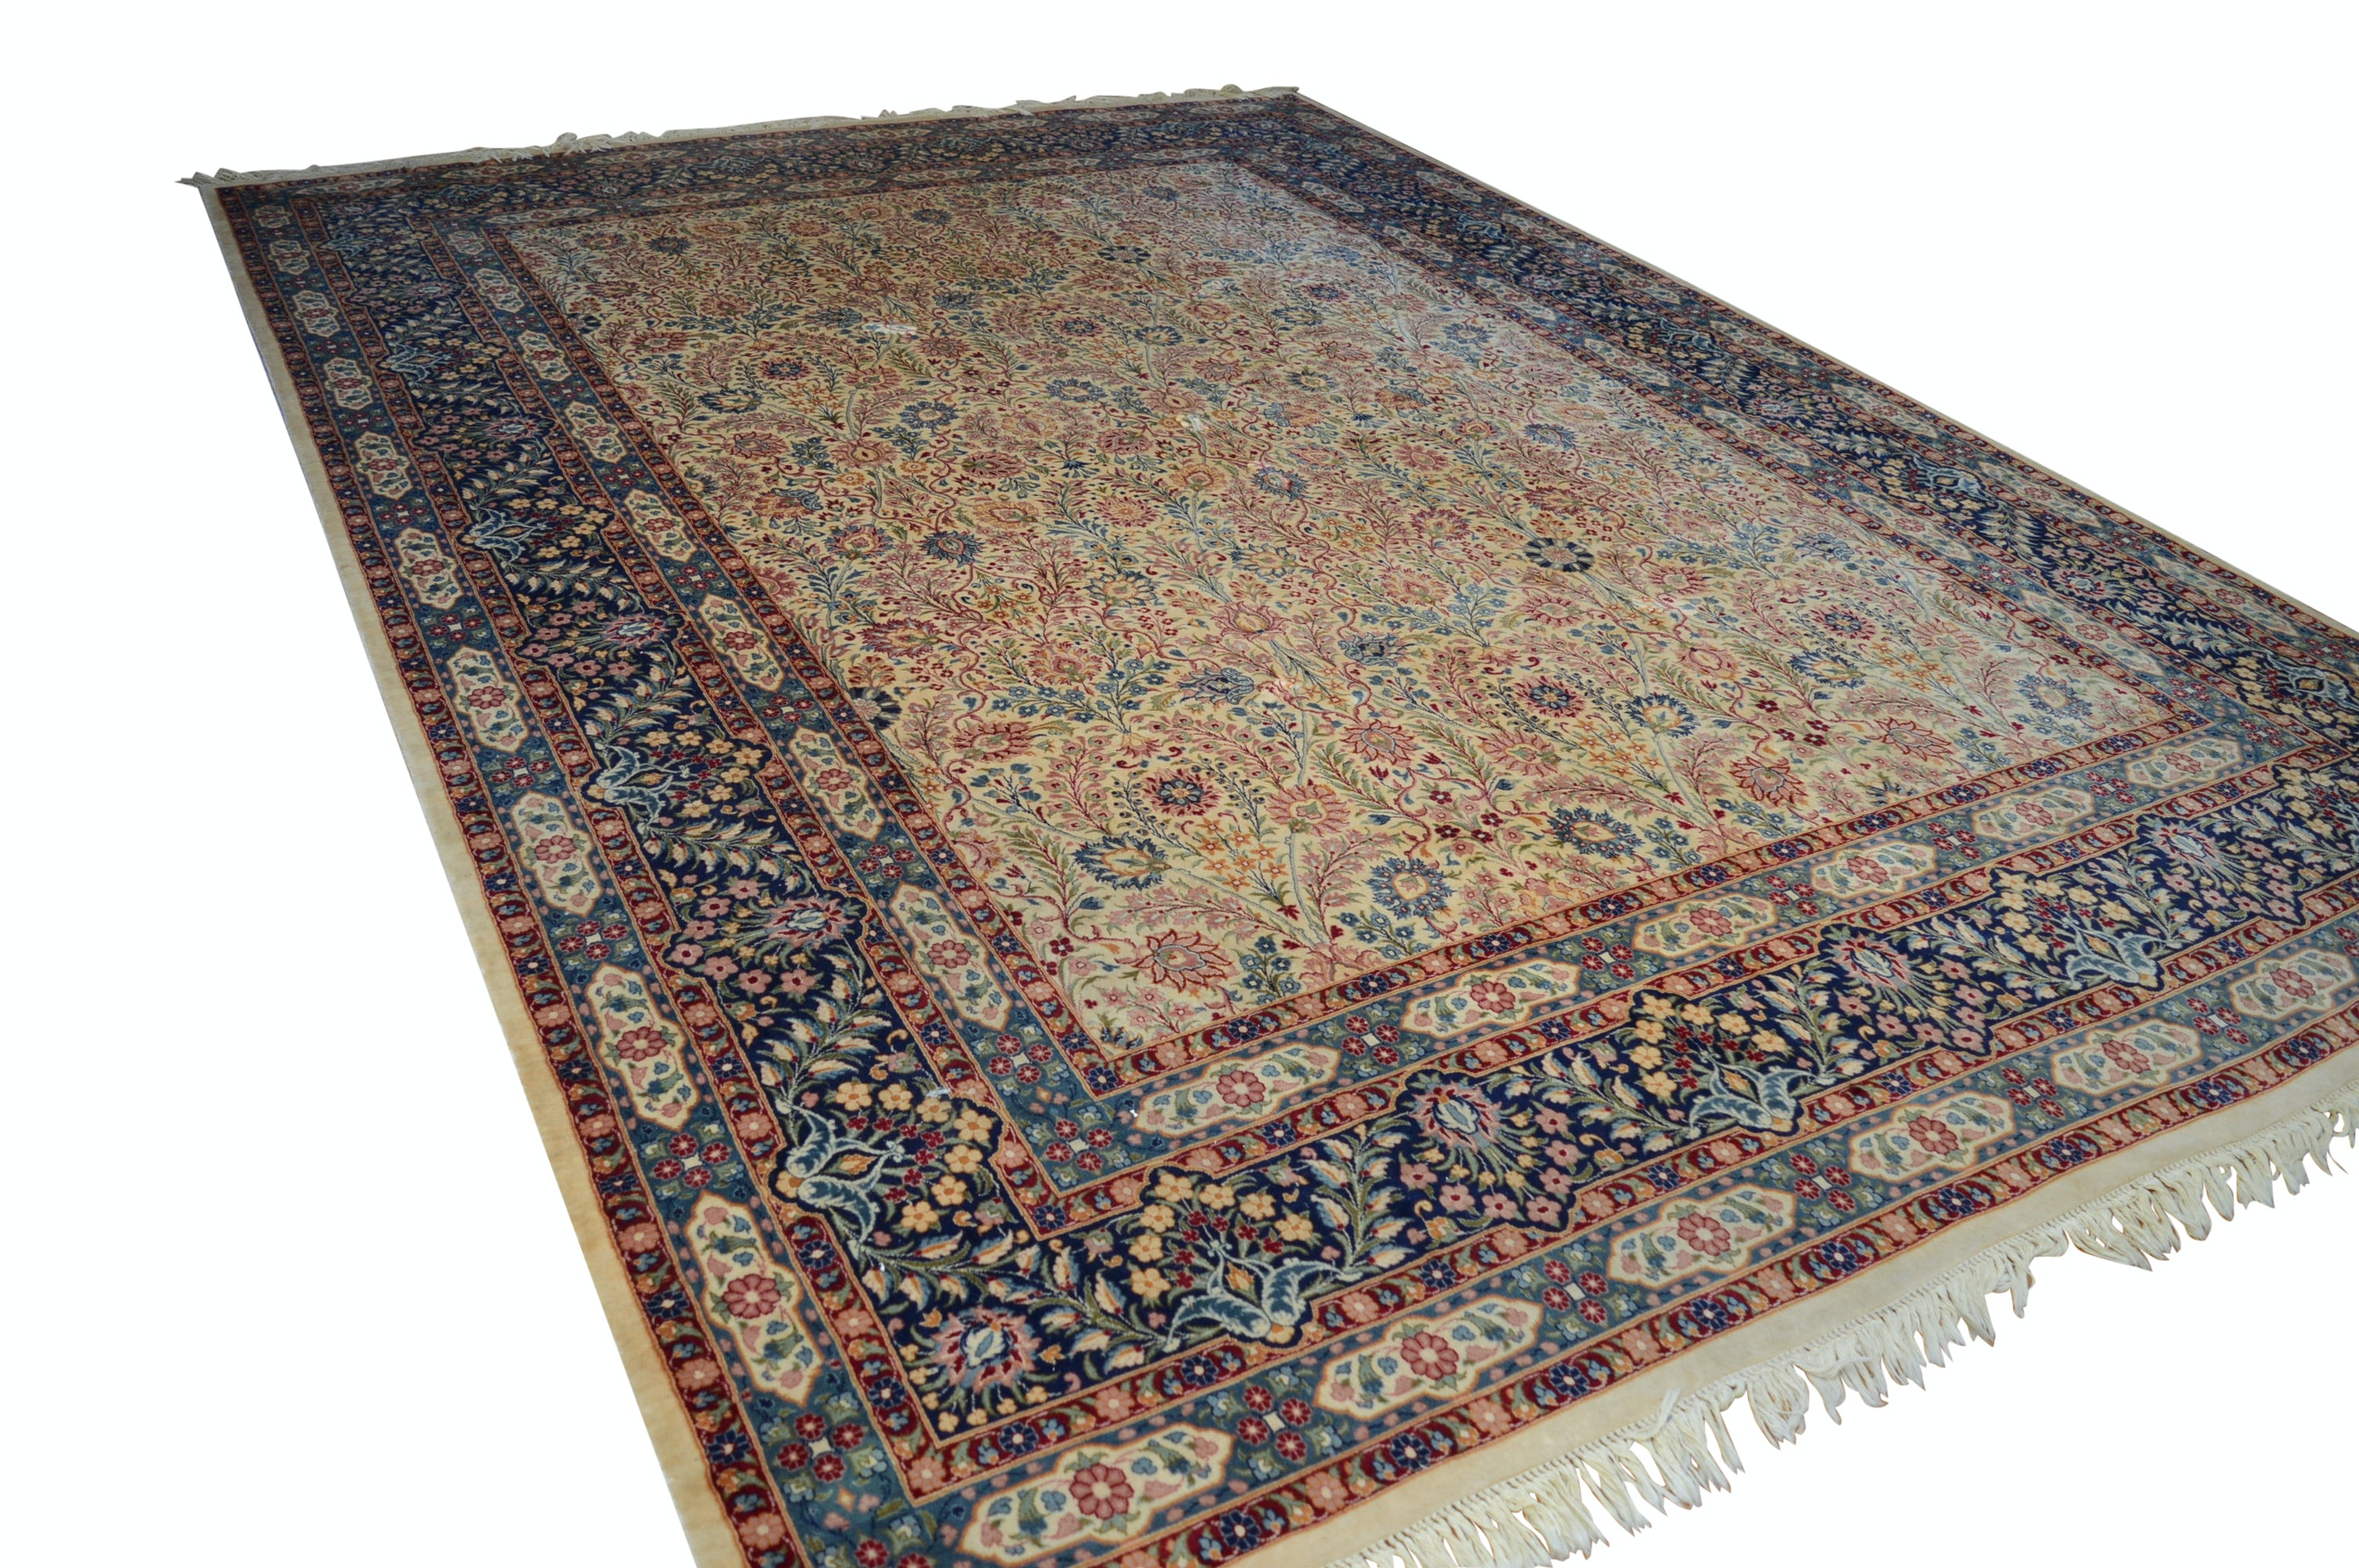 Fine Hand-Knotted Indo-Persian Artificial Silk, Wool and Cotton Room Sized Rug